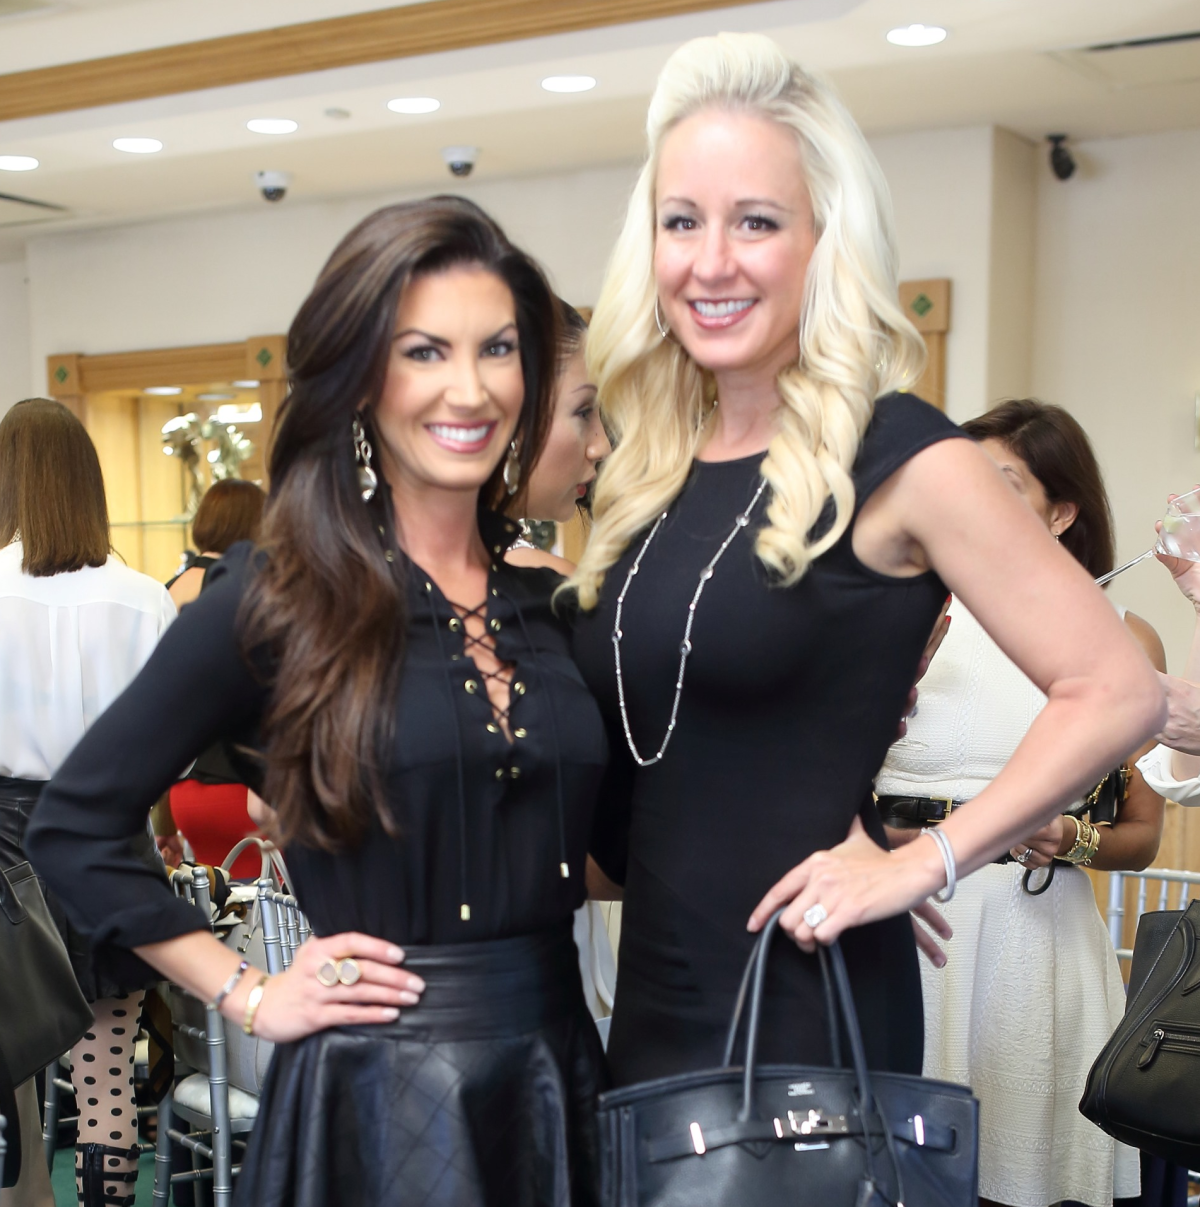 Houston, Una Notte kickoff party, October 2015, Nicole Lassiter, Jennifer Brown